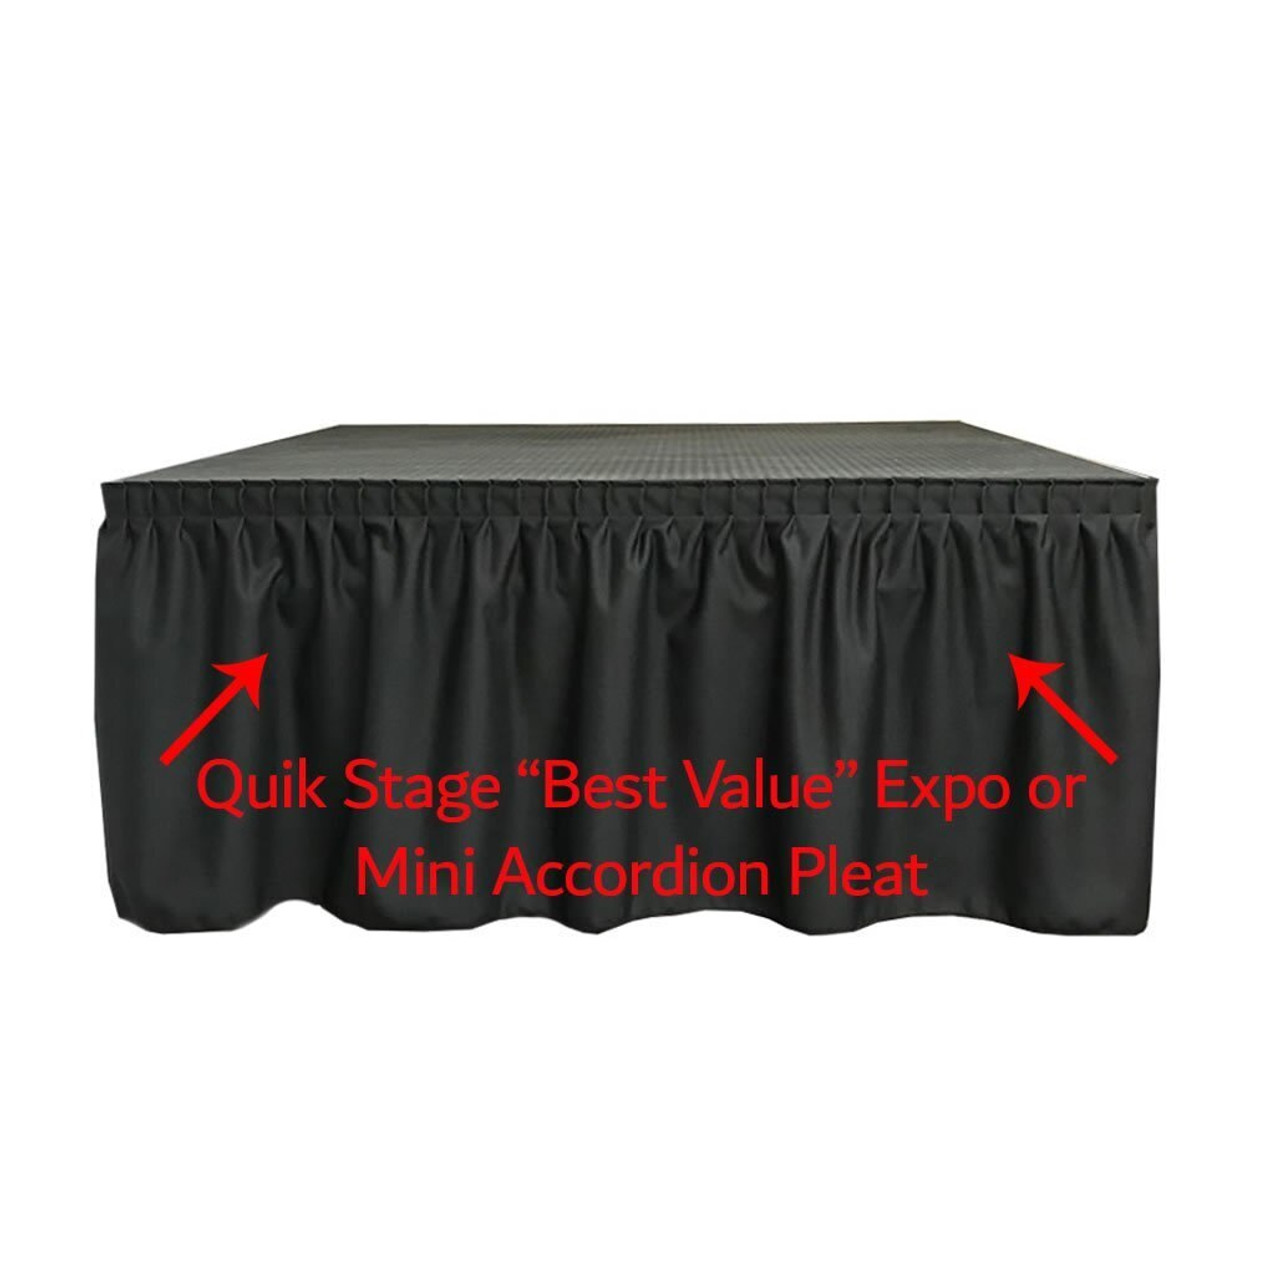 High Quality Quik Stage 4' x 16' High Portable Stage Package with Black Polyvinyl Non-Skid Surface. Additional Heights and Surfaces Available - Best Value Expo Pleat Stage Skirting